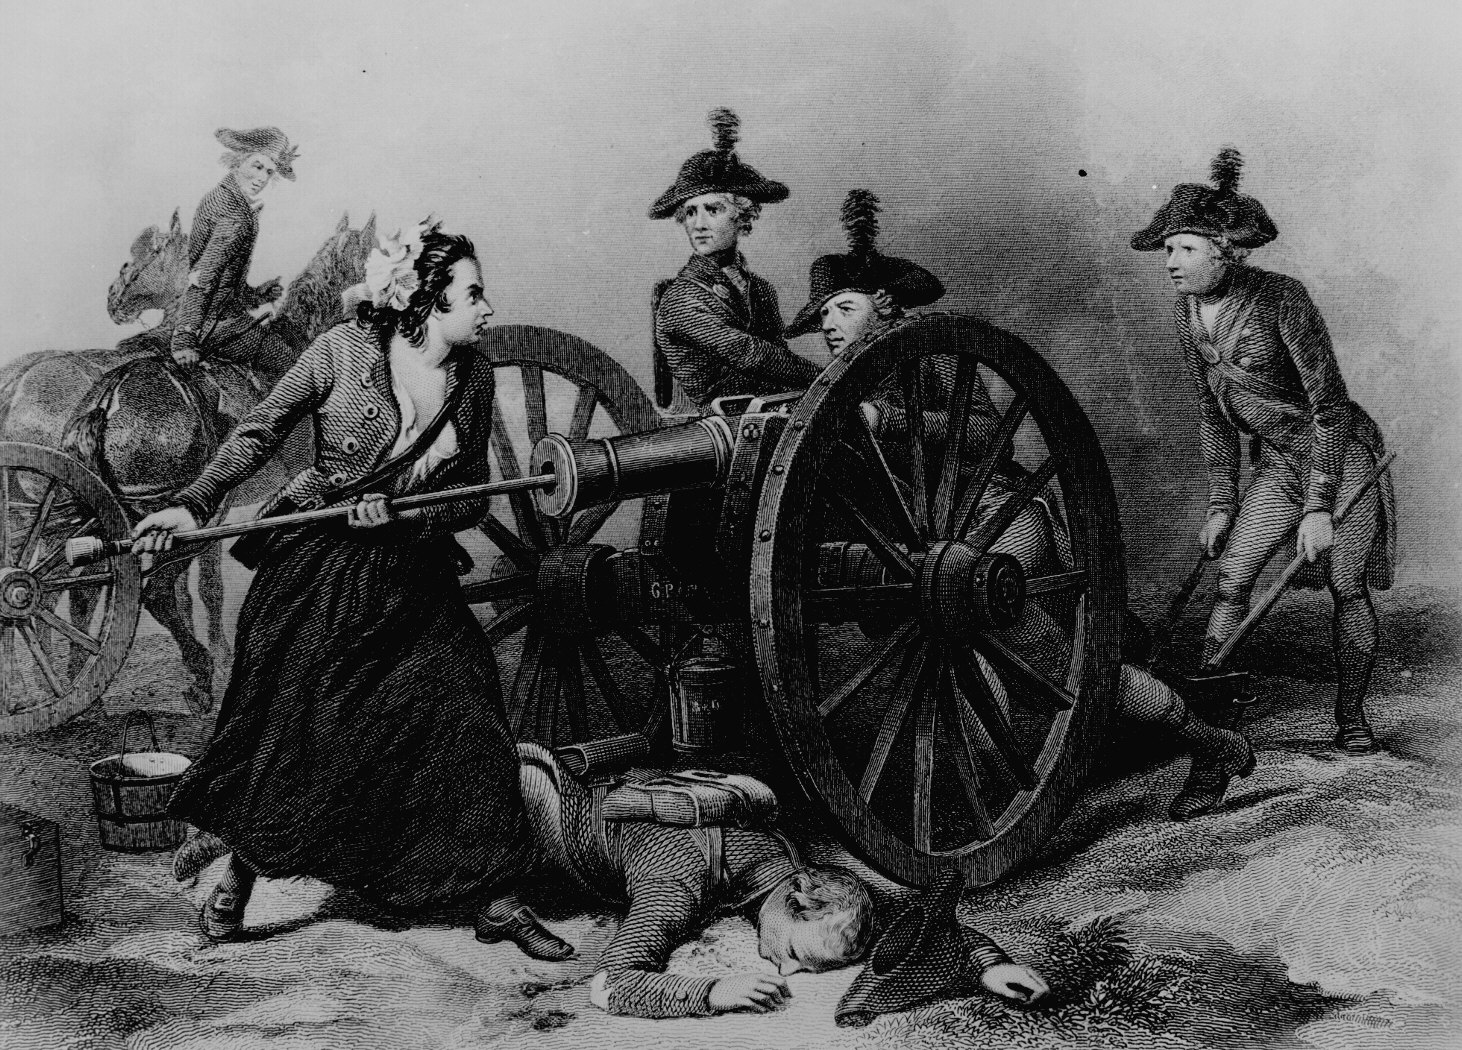 Mary Ludwig Hays McCauley (Molly Pitcher)